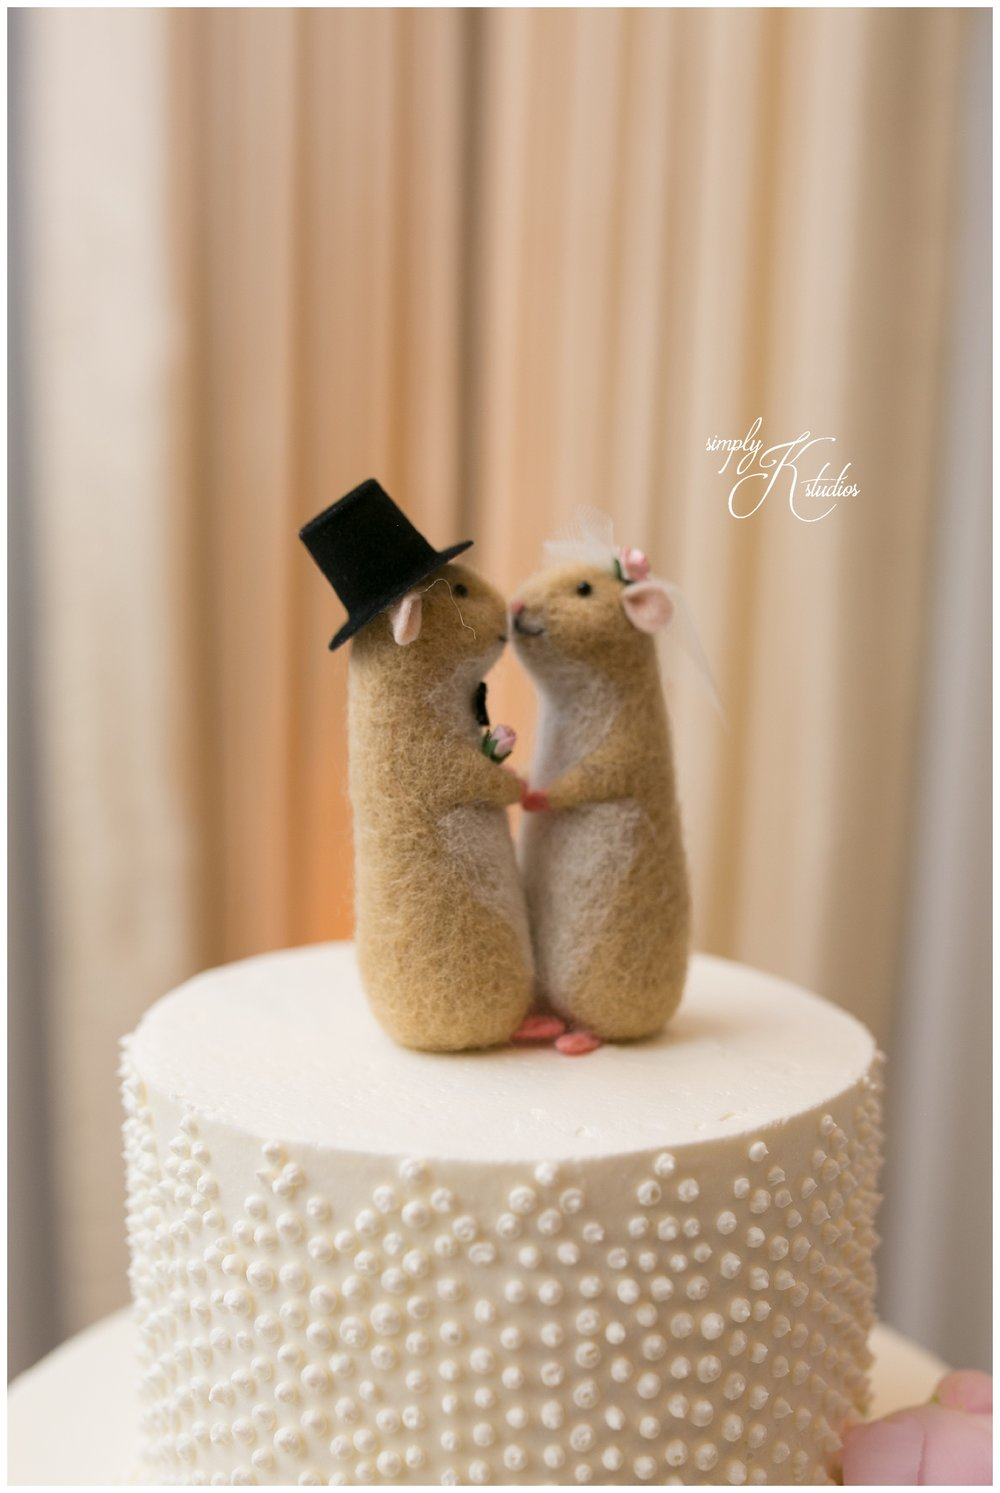 Hamster Wedding Cake Topper.jpg